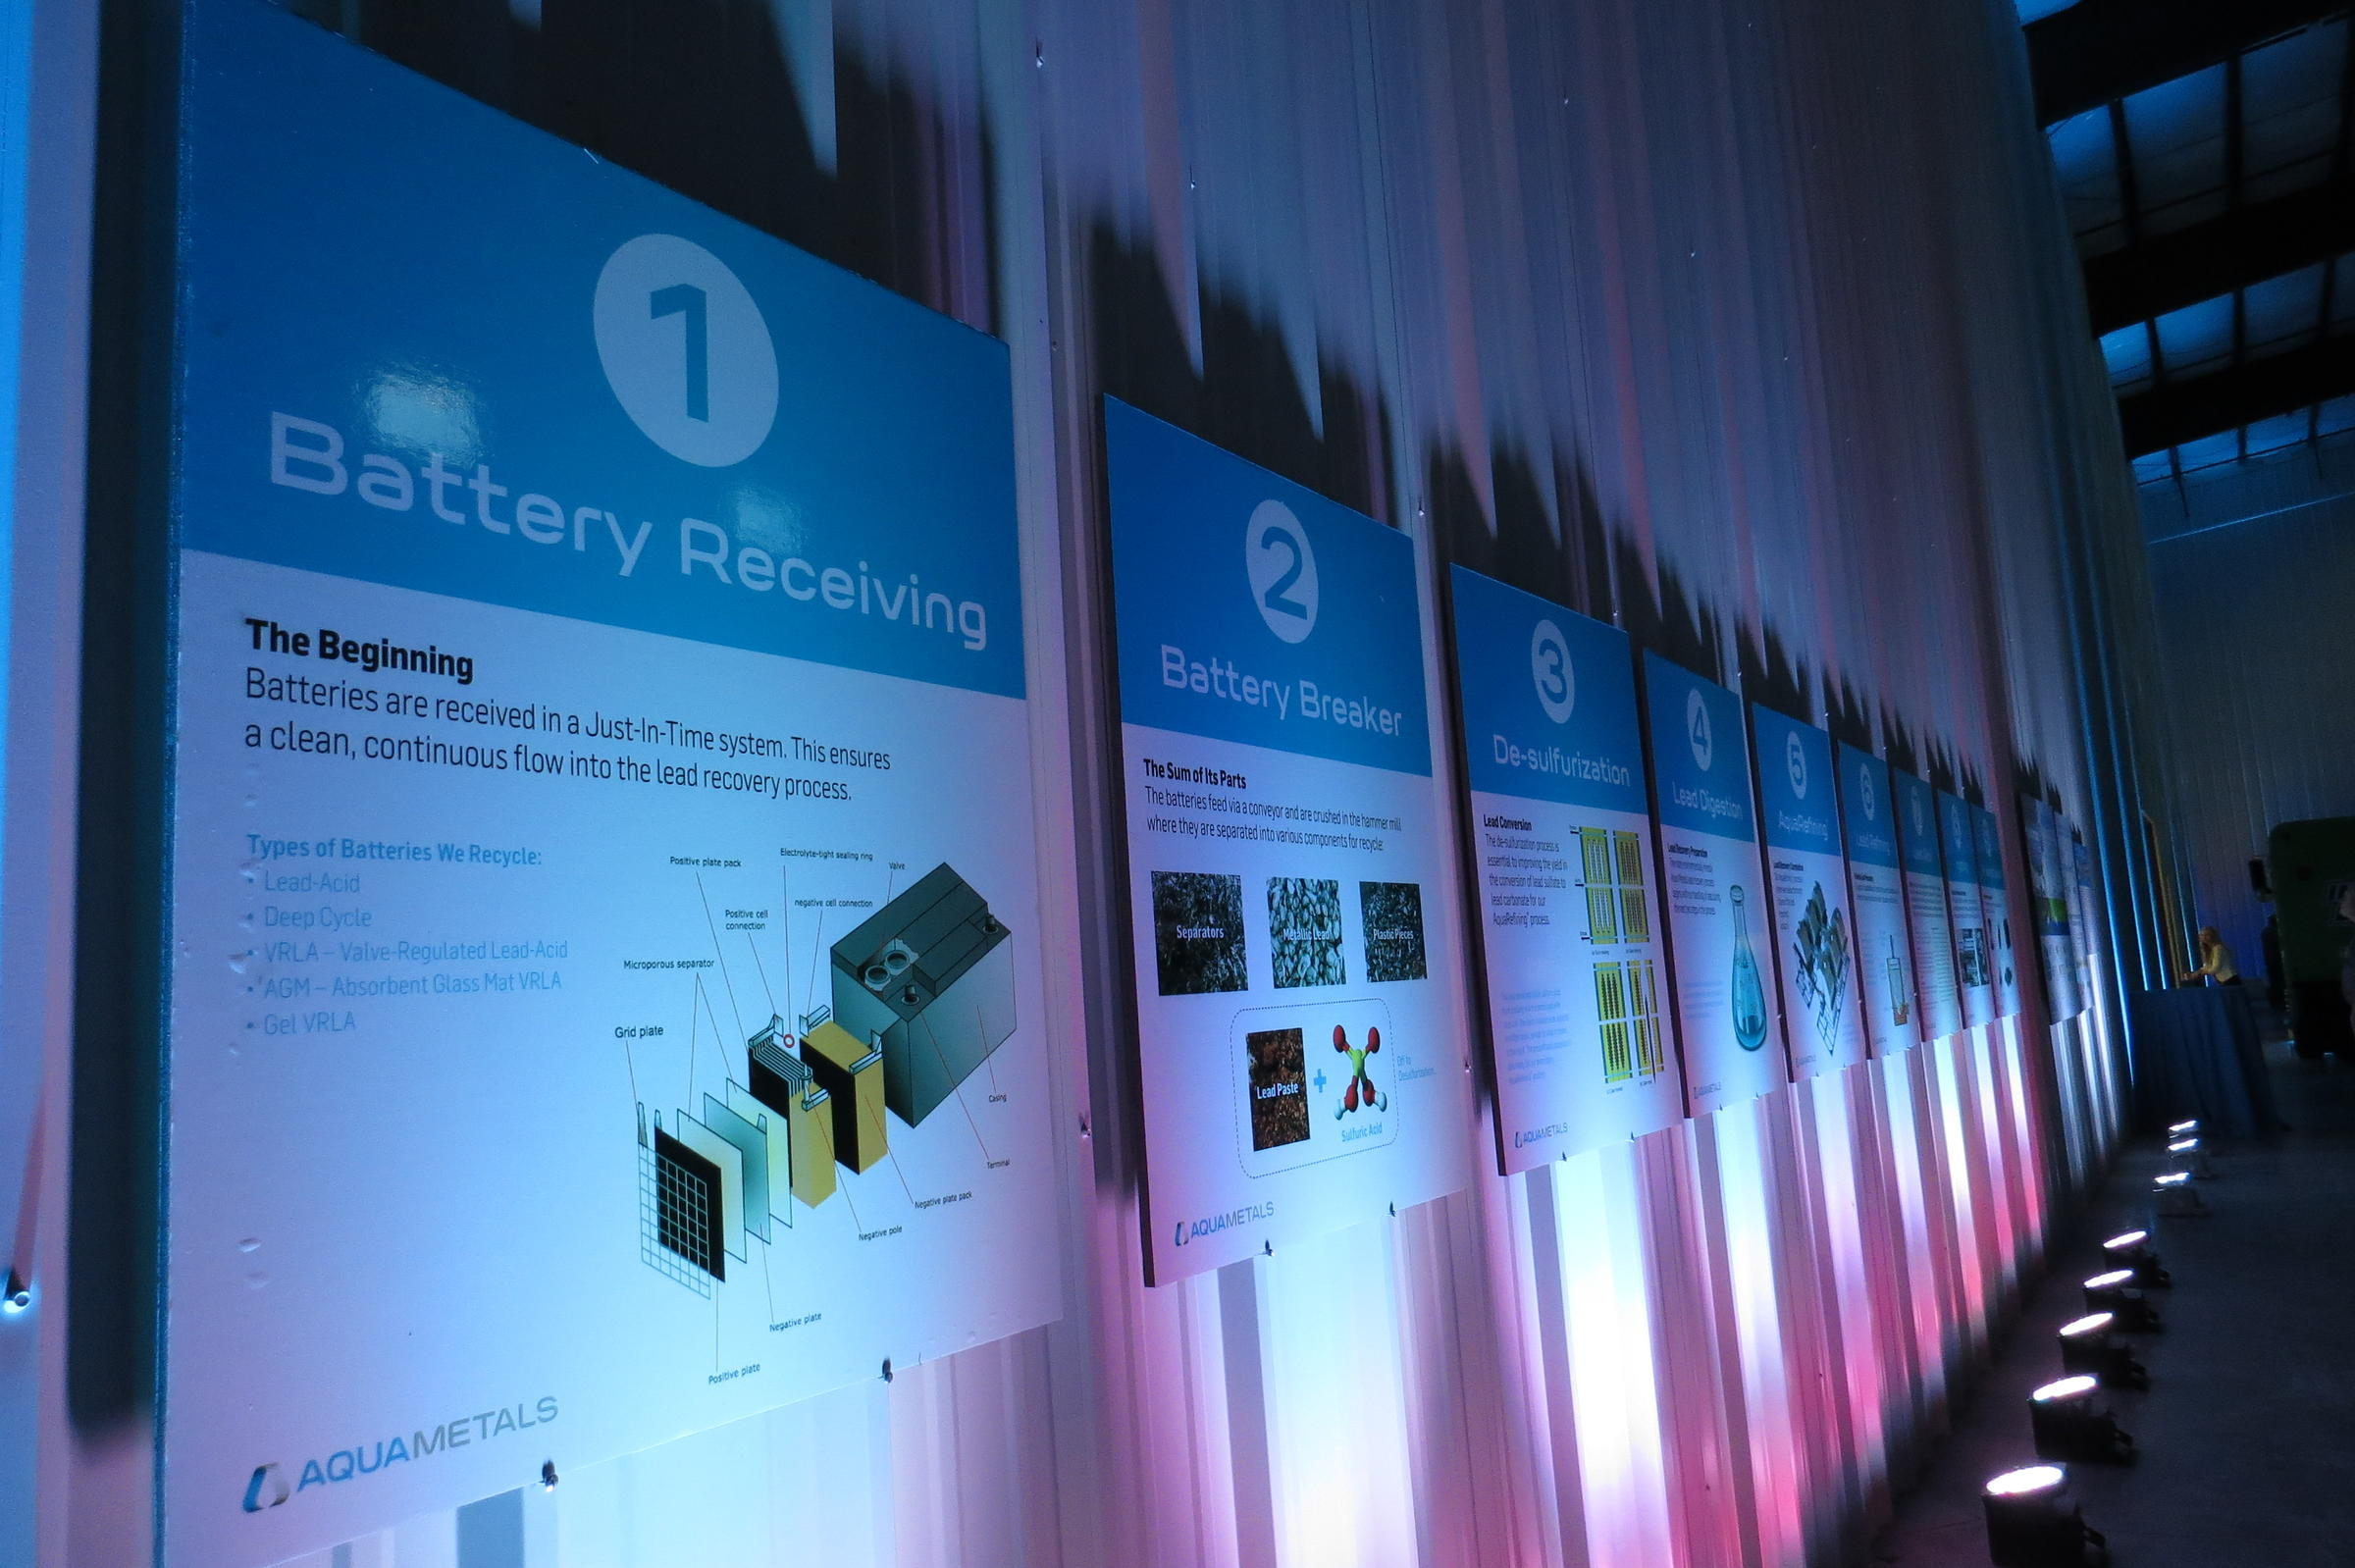 This Display Breaks Down The Battery Recycling Process At Aqua Metals A Company That Curly Recycles Lead Batteries And Is Exploring Lithium Ion